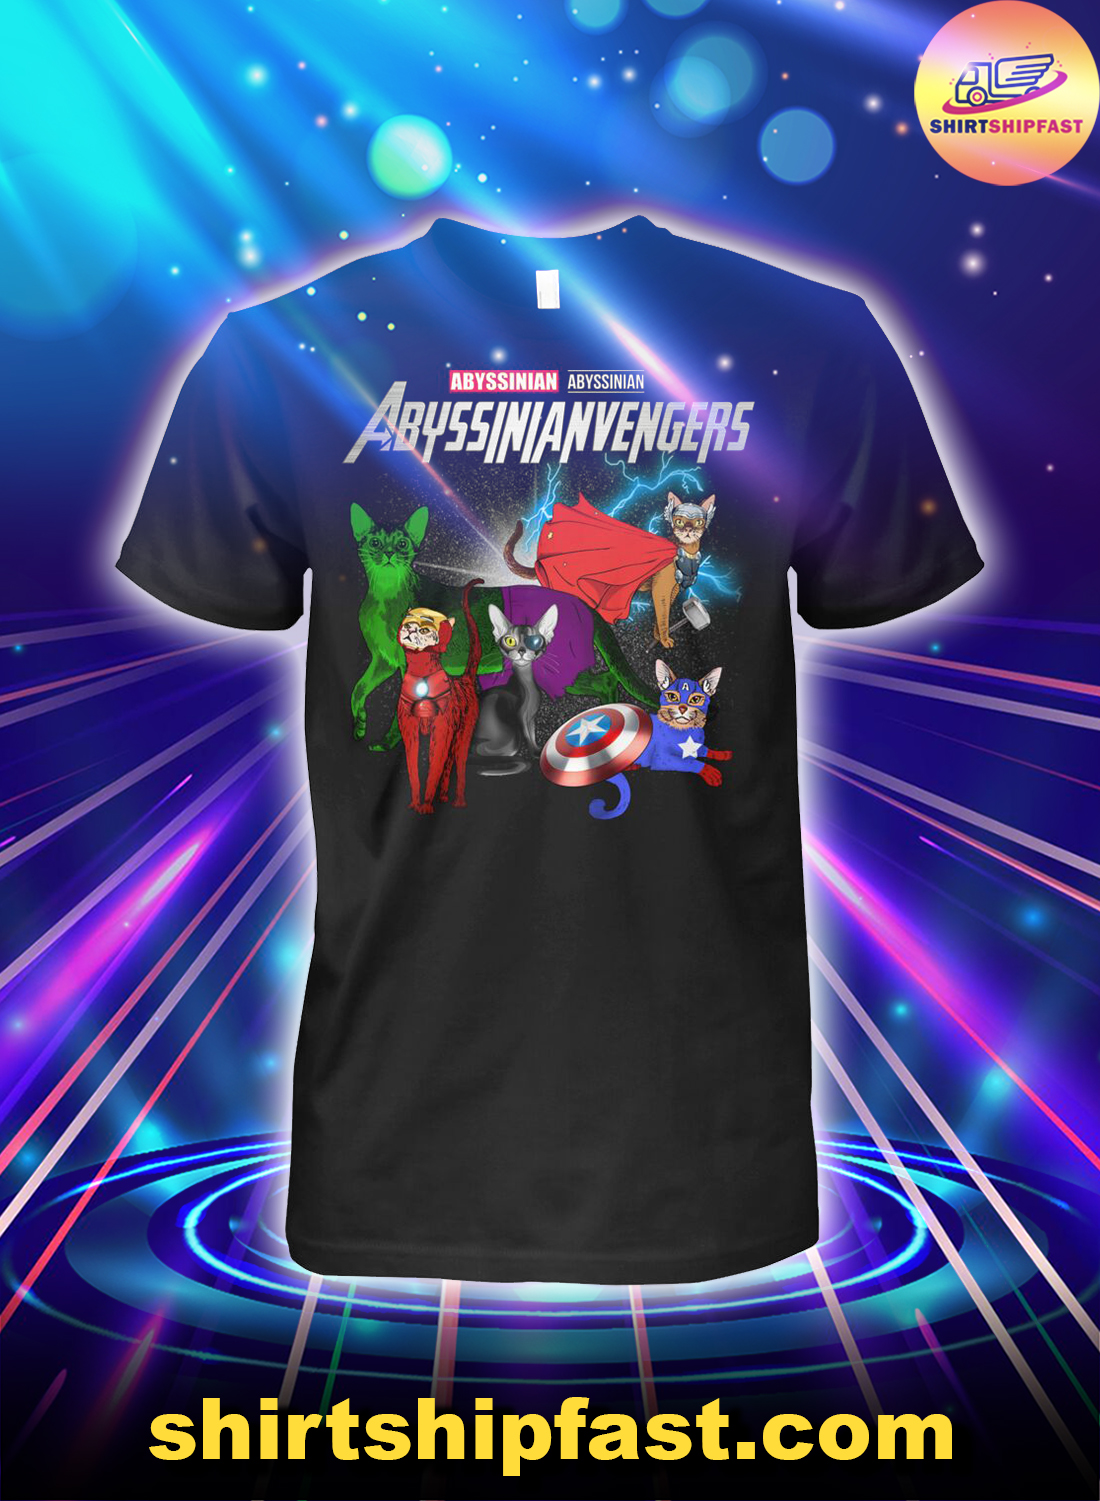 Abyssinianvengers Abyssinian Avengers shirt